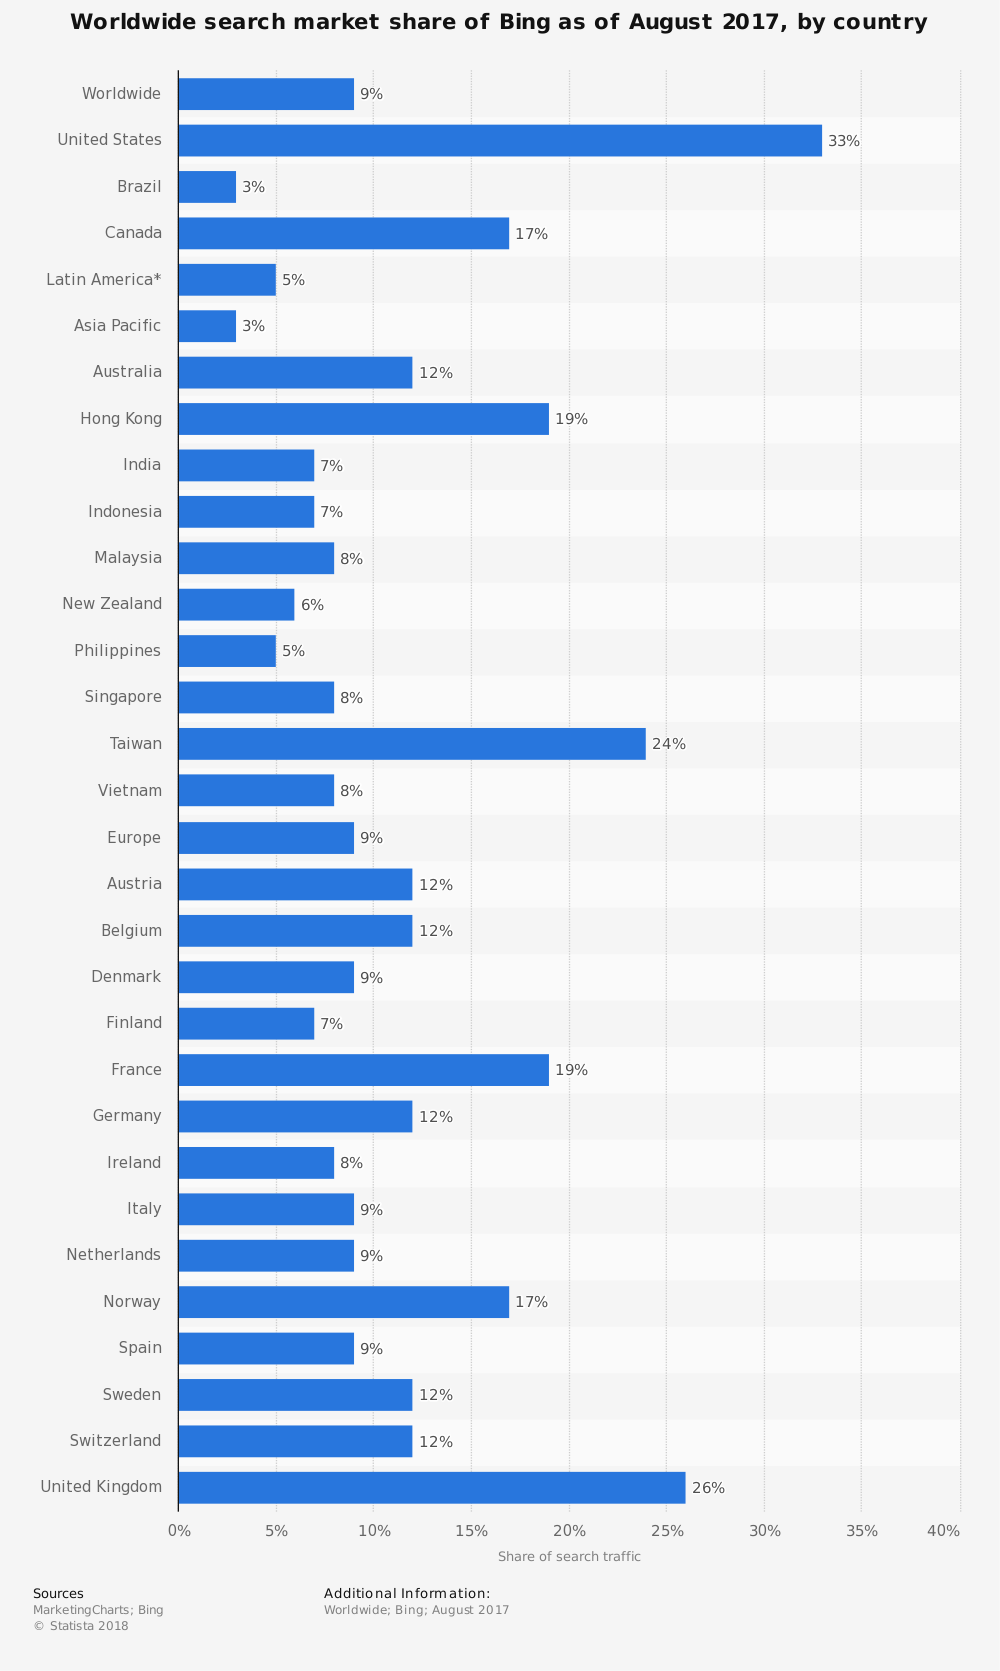 Bing market share by country